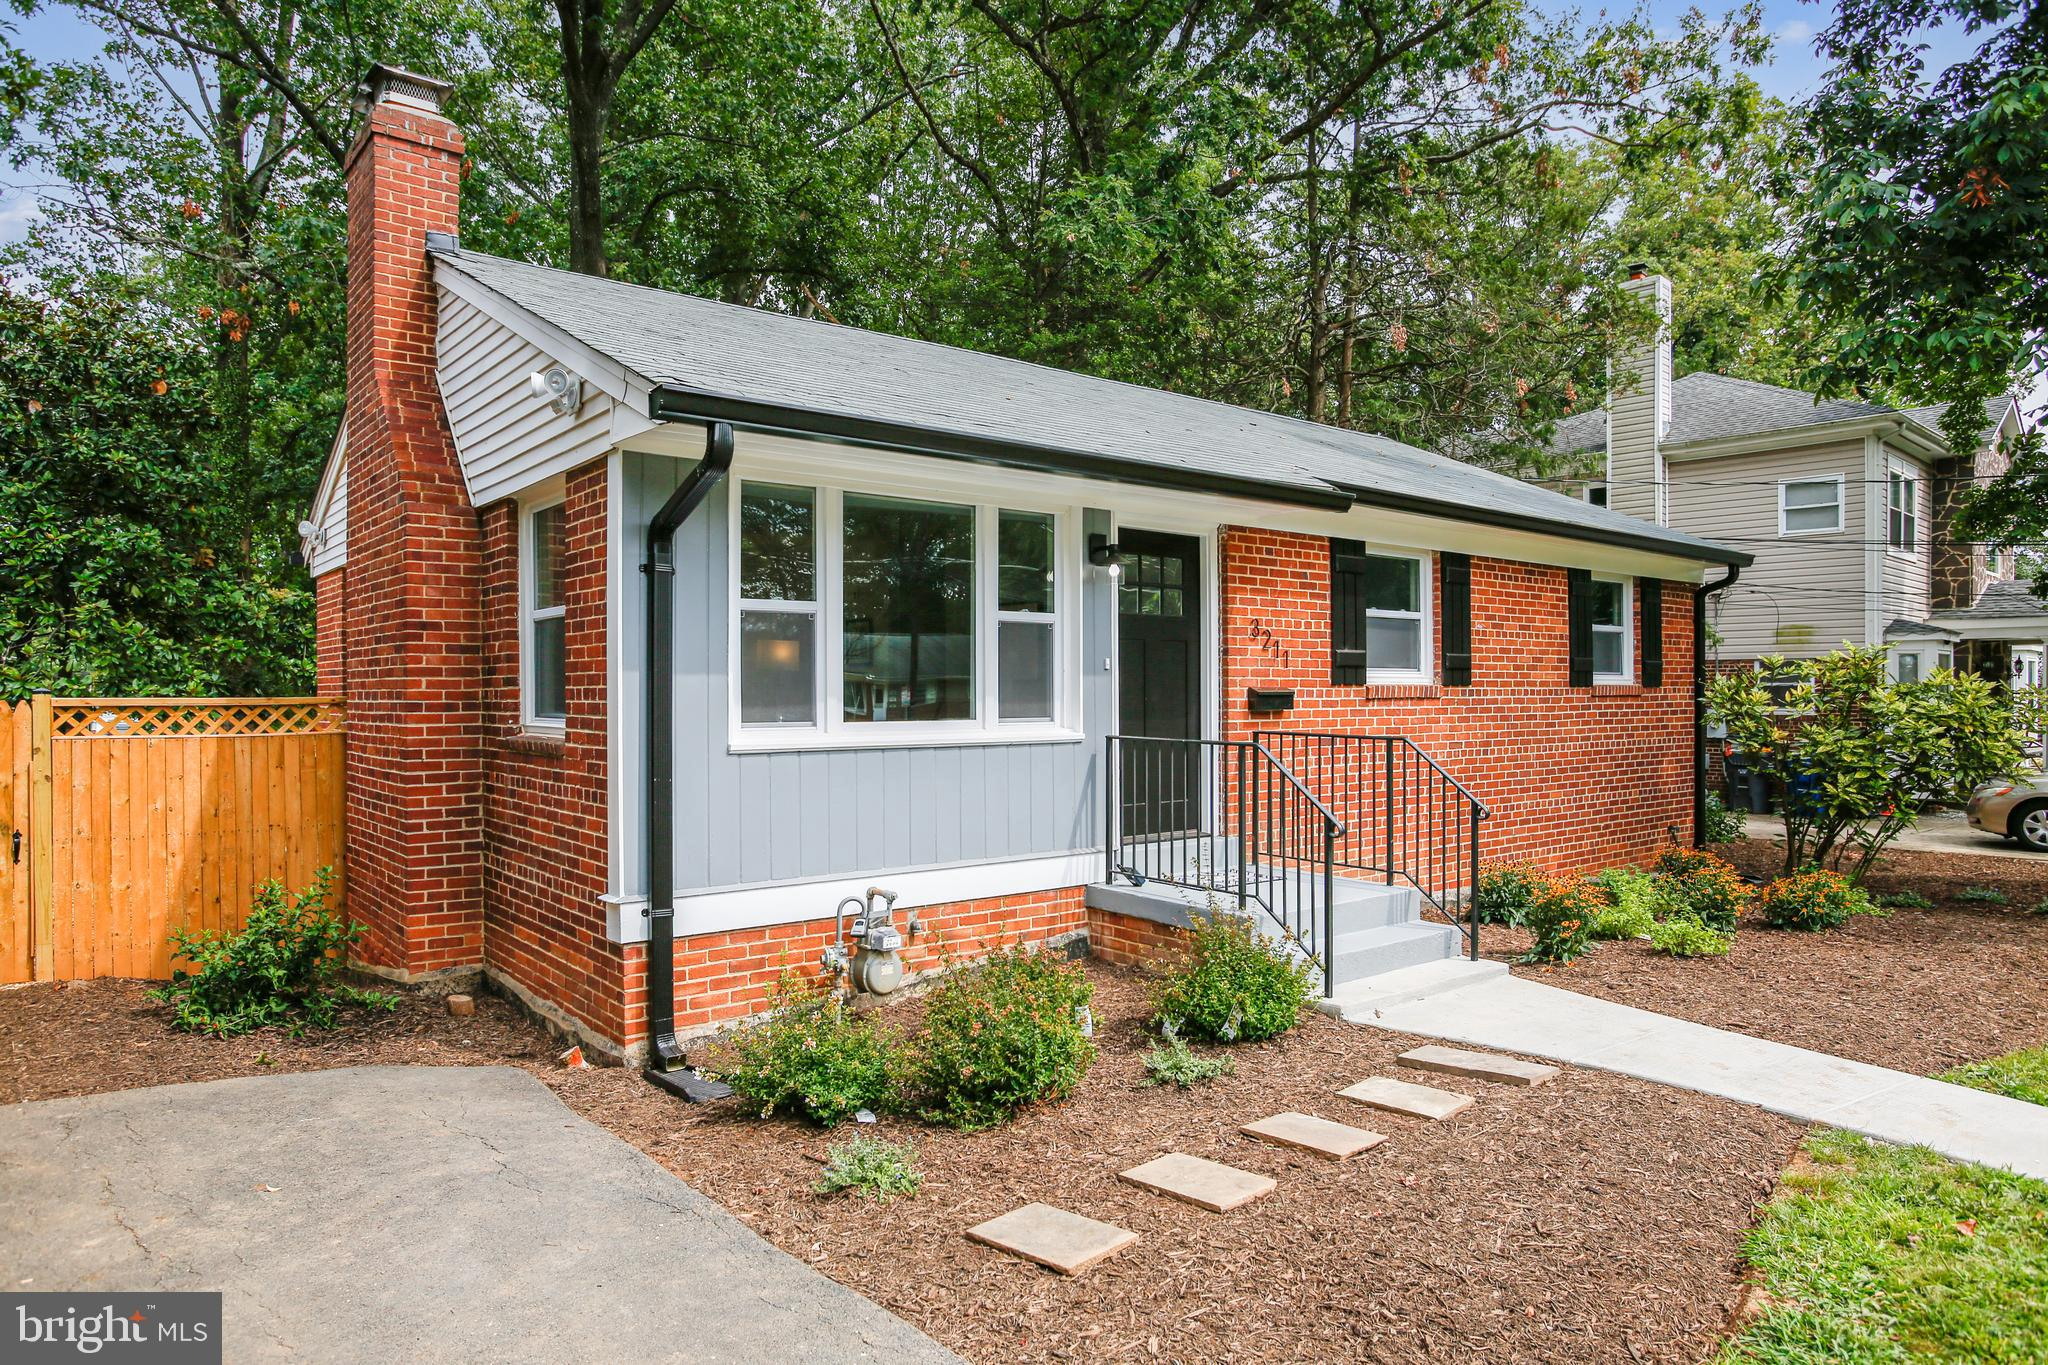 NEWLY RENOVATED 3-4 BR  2-LEVEL HOME. Don't  Miss This One! Redone Top to Bottom. New Roof, Gutters,